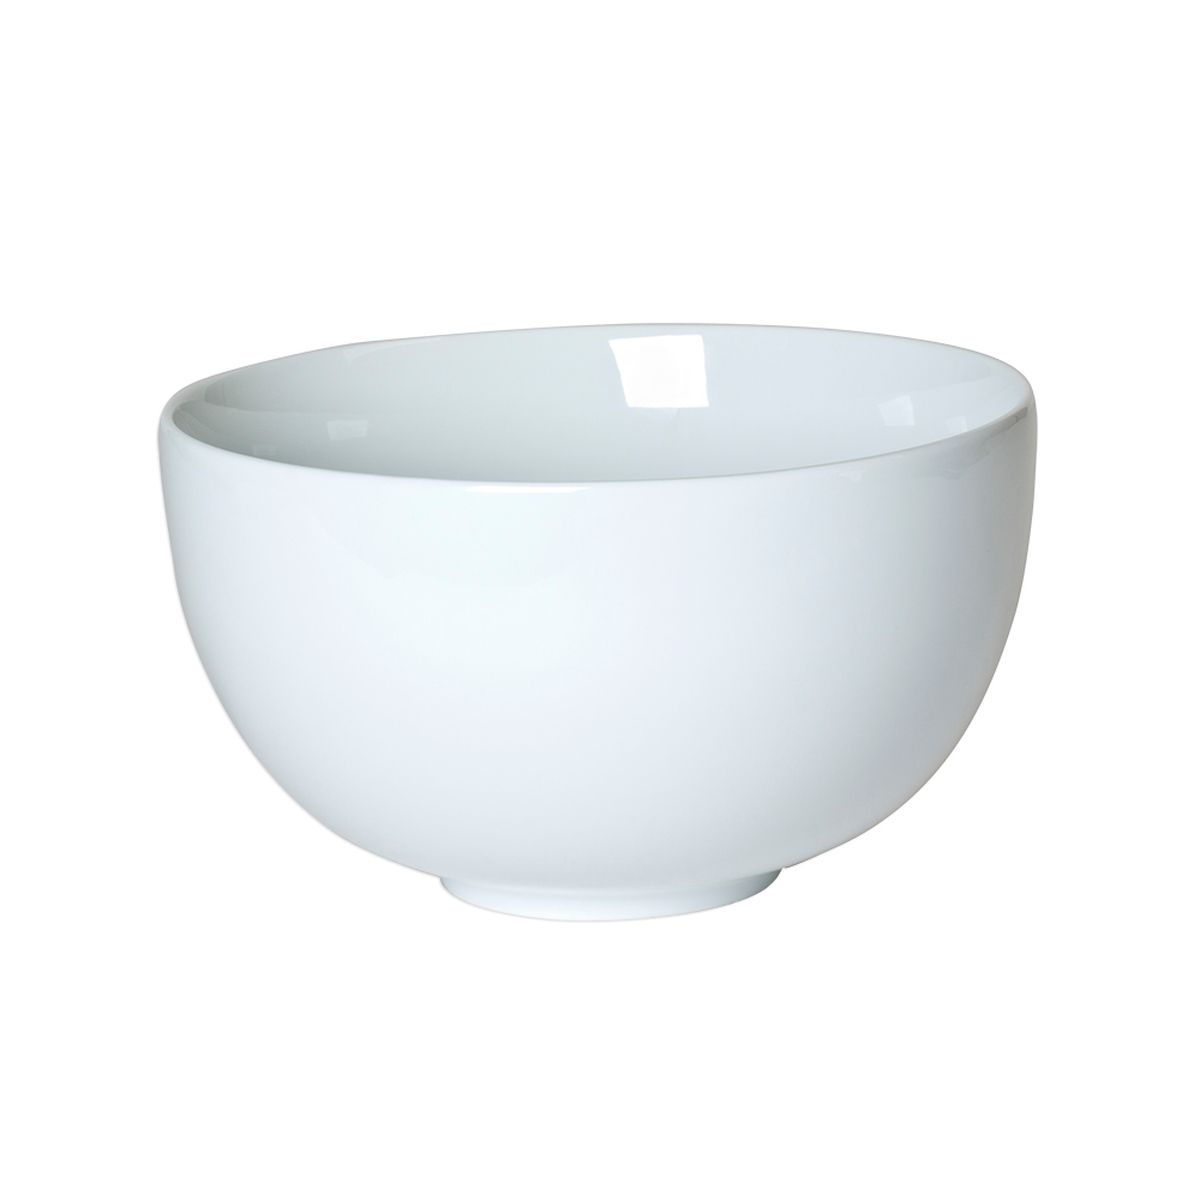 Saladier en porcelaine blanche 27 cm forme boule - Table Passion